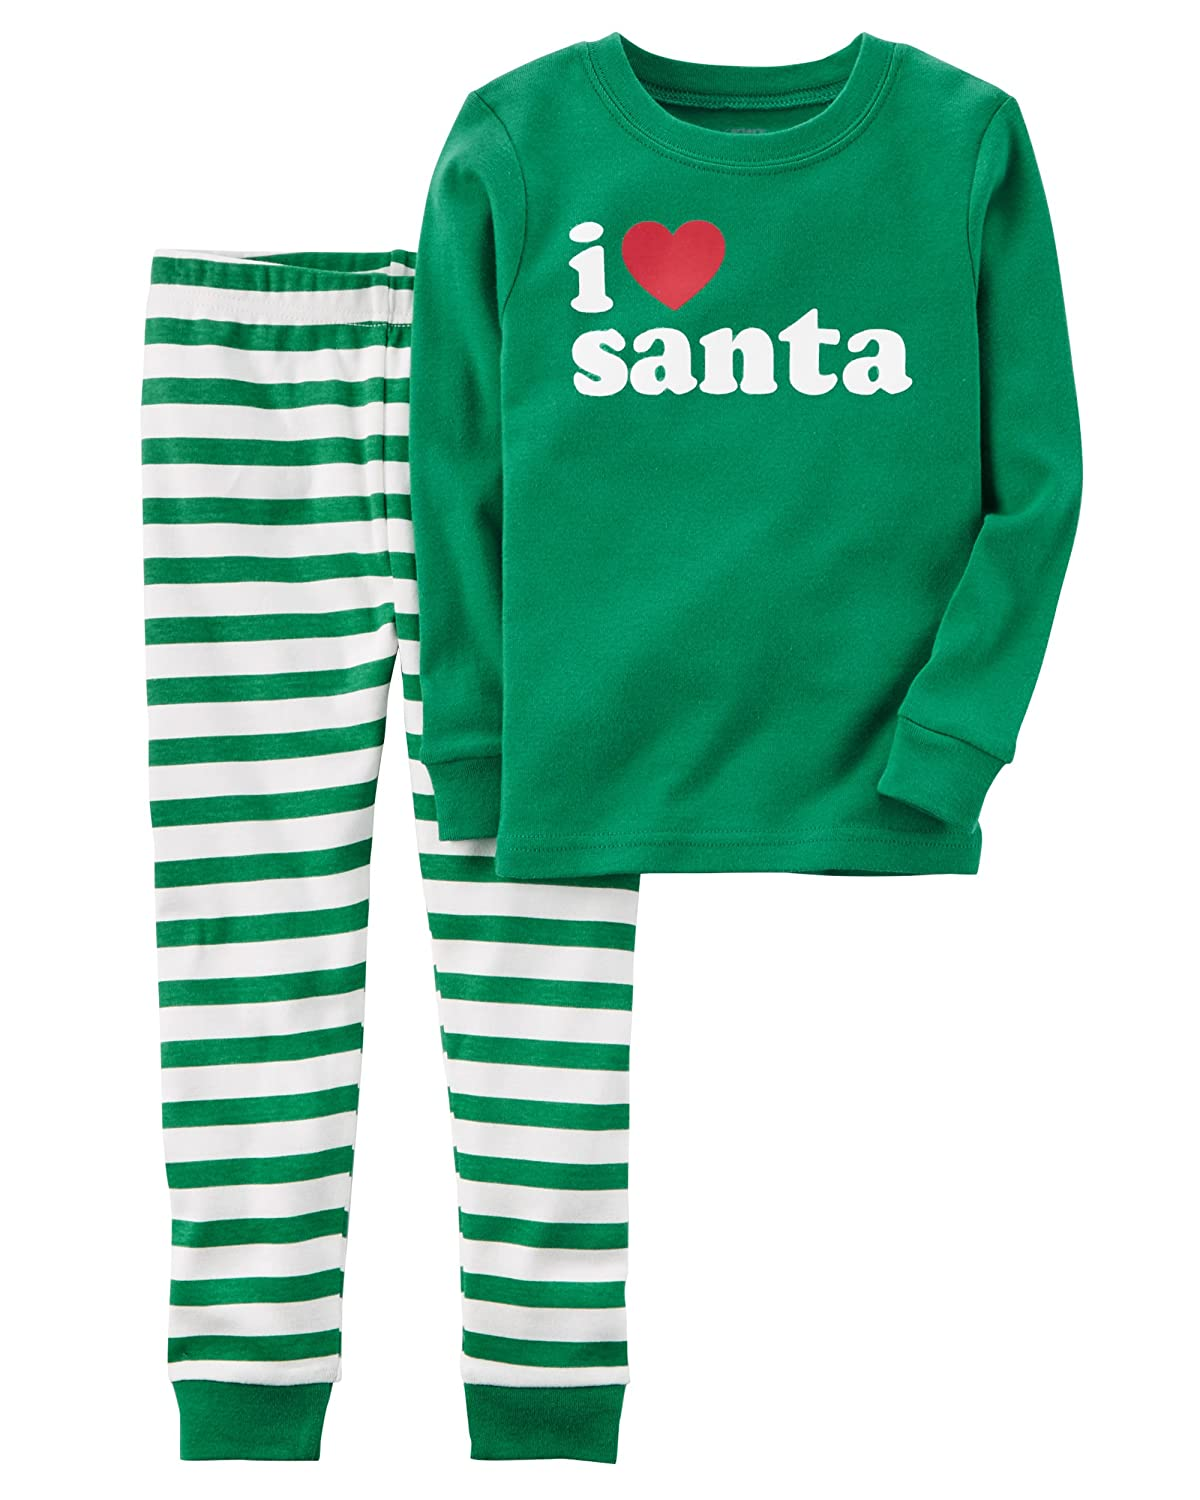 12 Months, Green Carters Baby Unisex Holiday Santa 2-Piece Santa Snug Fit Cotton PJs